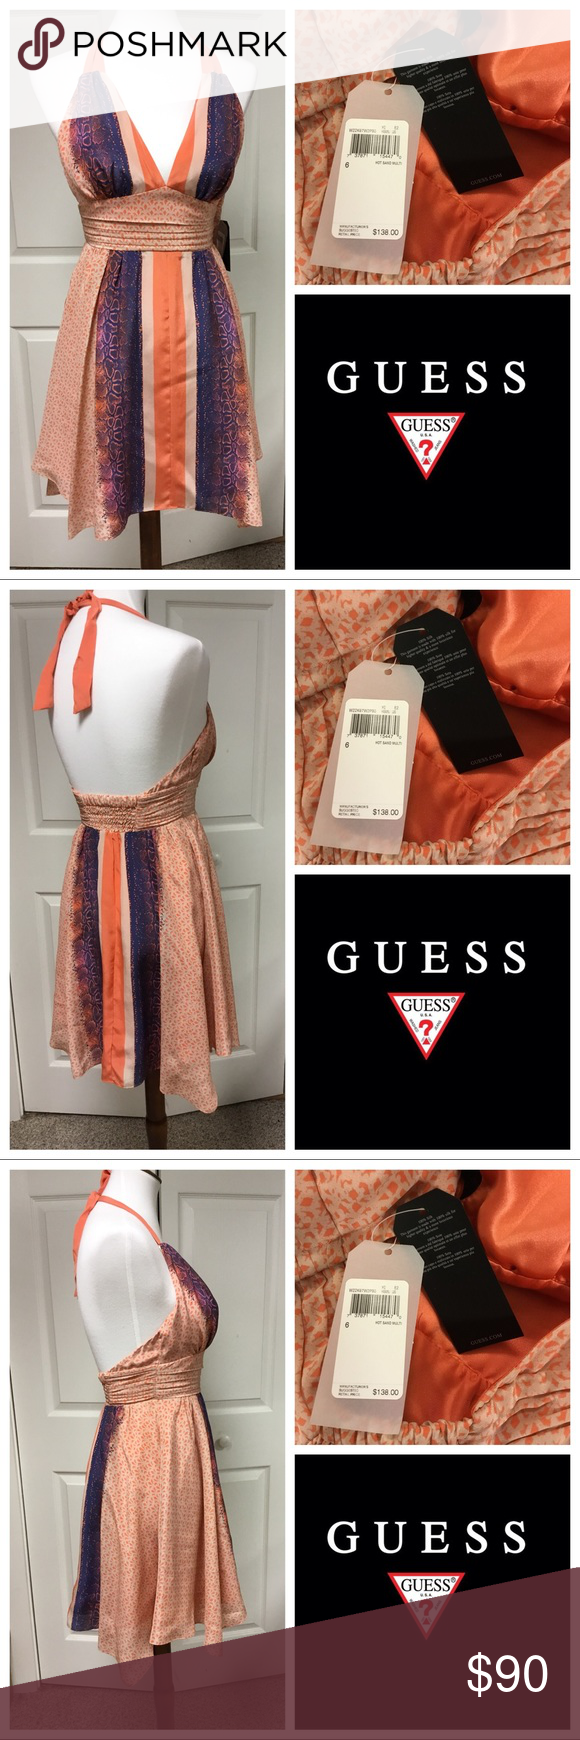 037bcd5f1c2 JUST IN❗️NWT SILK HOT SANDS GUESS BH DRESS This silk dress is a size